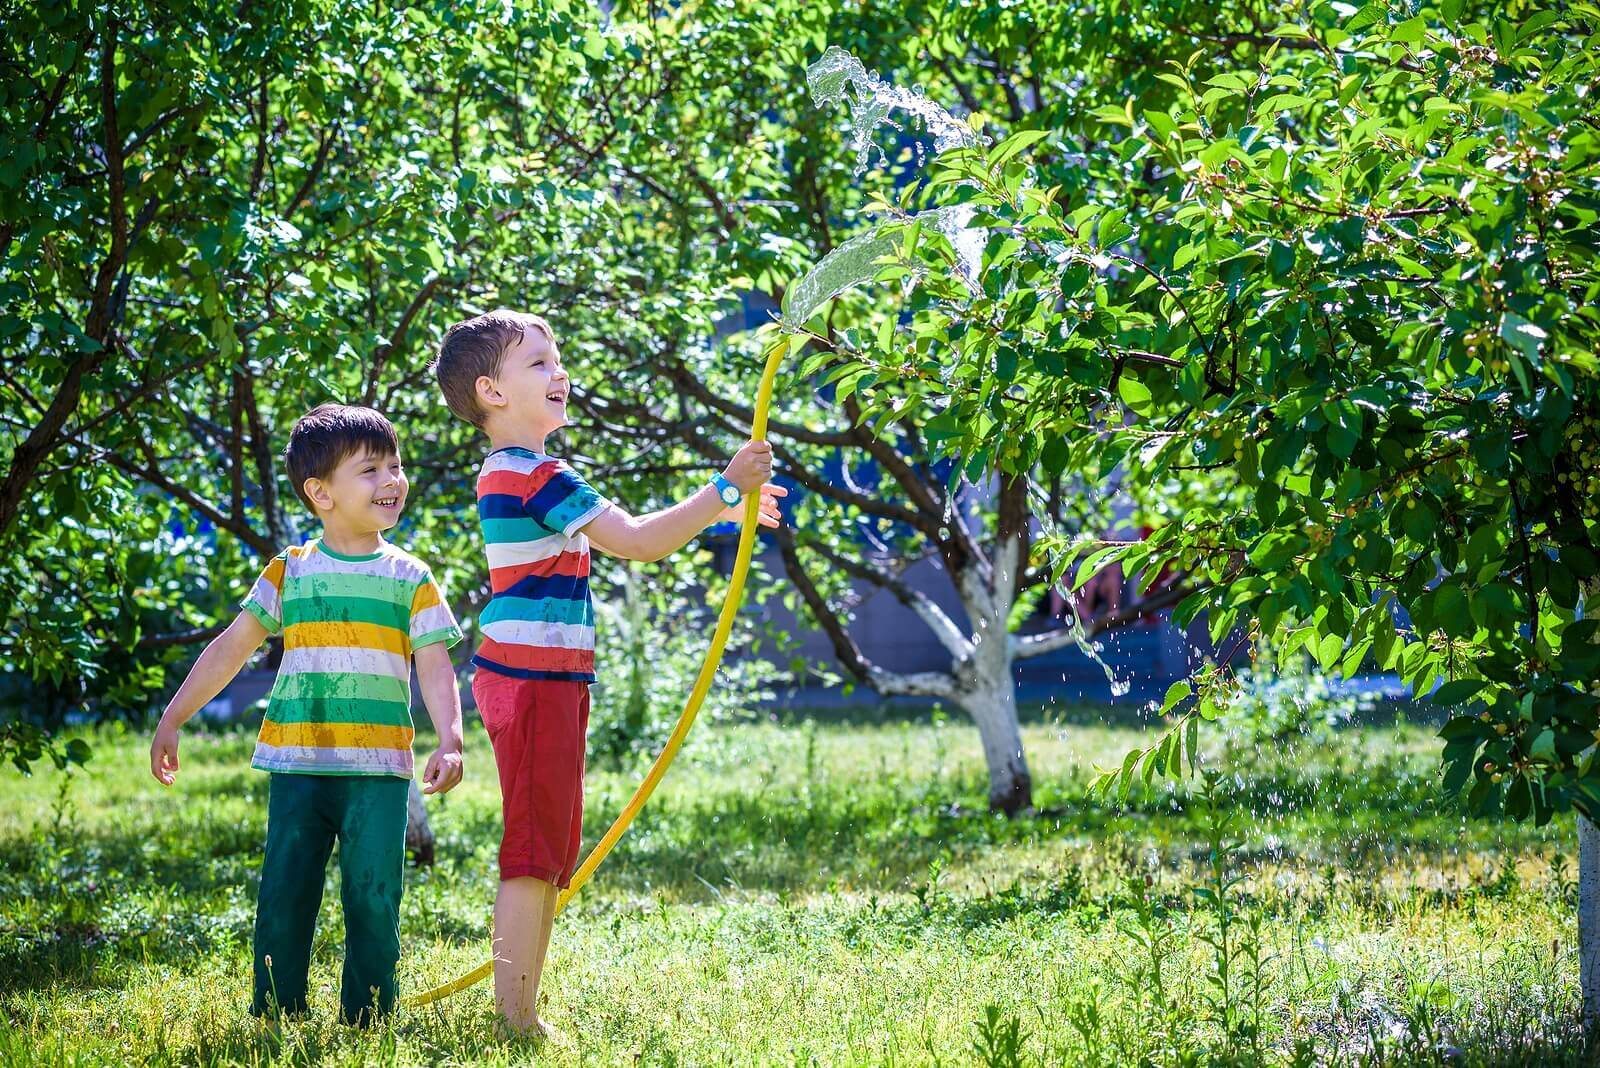 Creative Games and Their Importance for Children